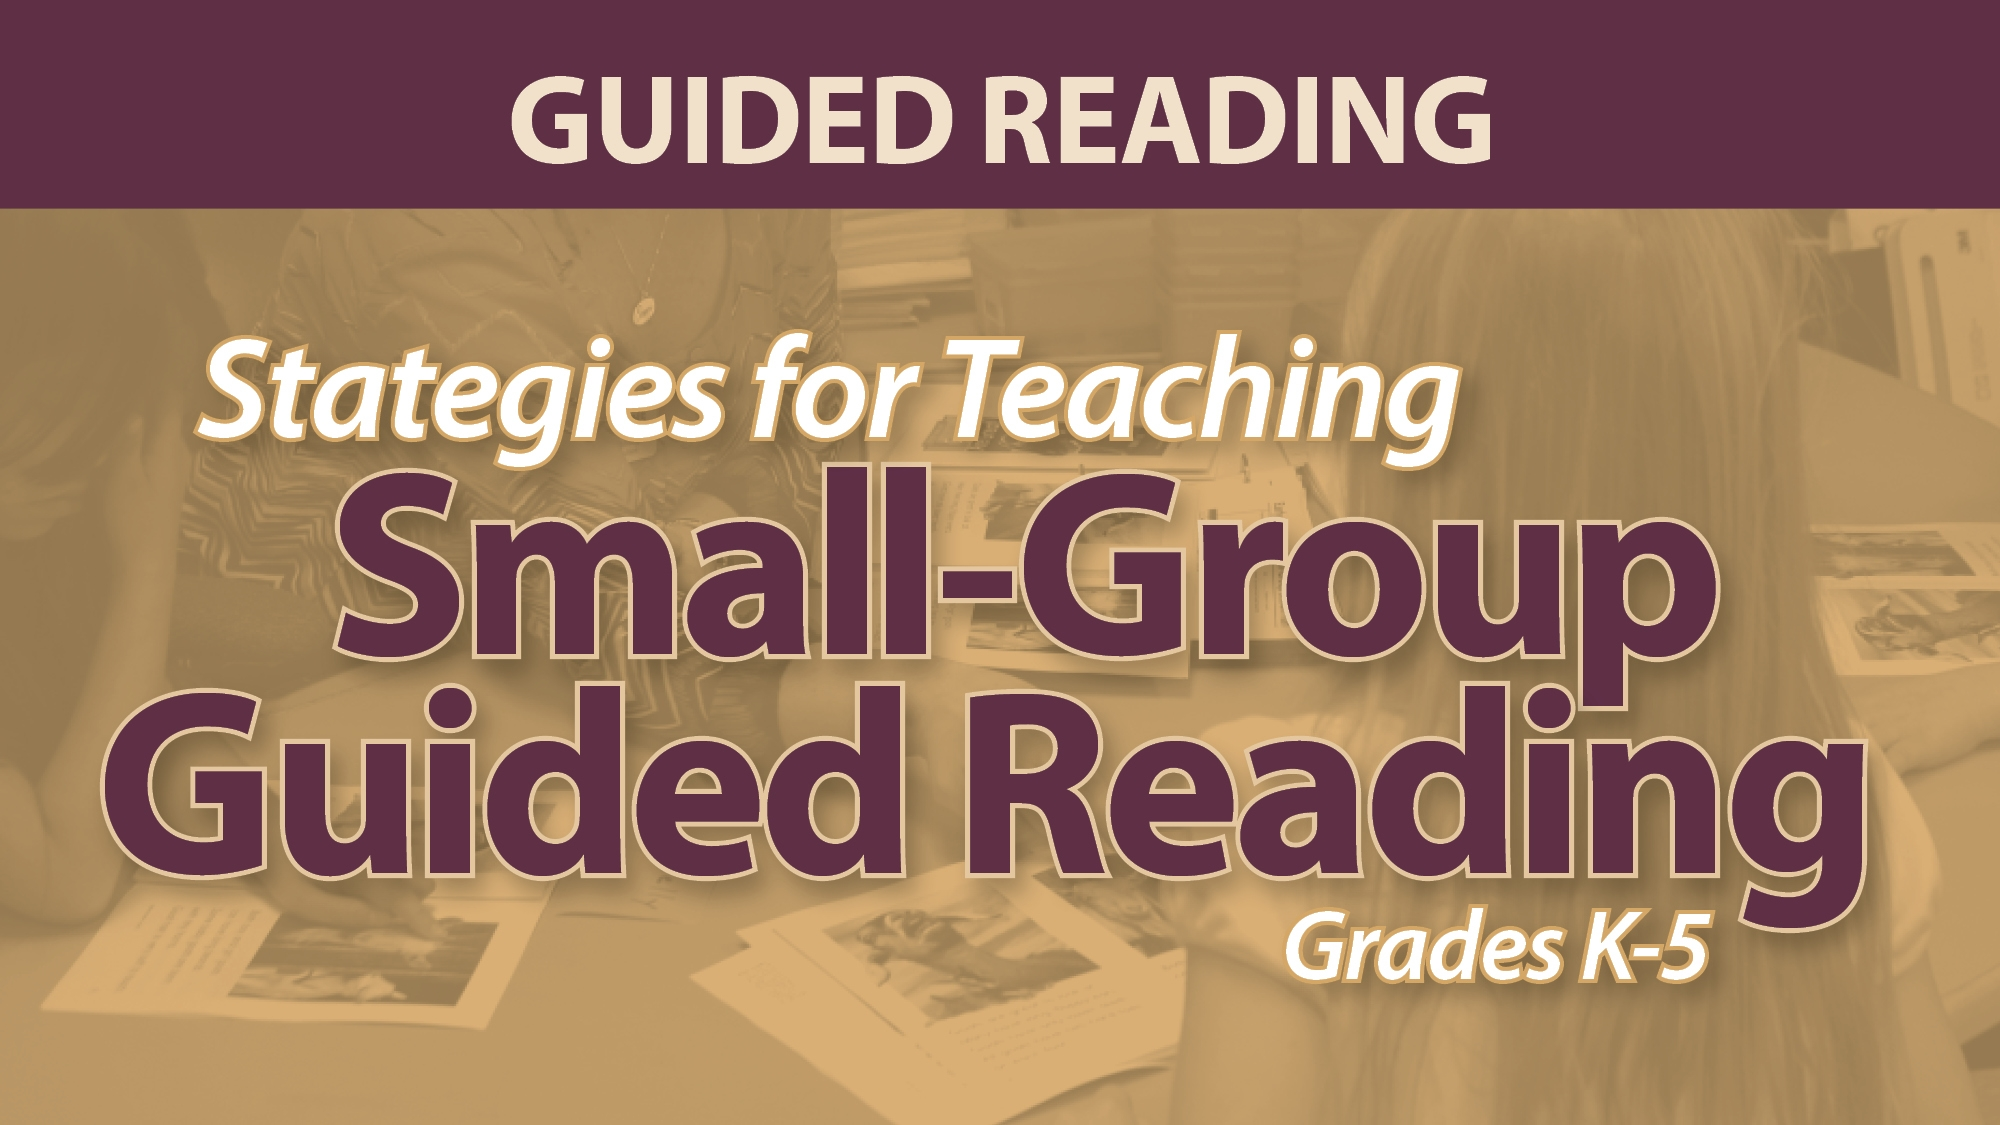 Smekens Education webAcademy Strategies for Teaching Small-Group Guided Reading